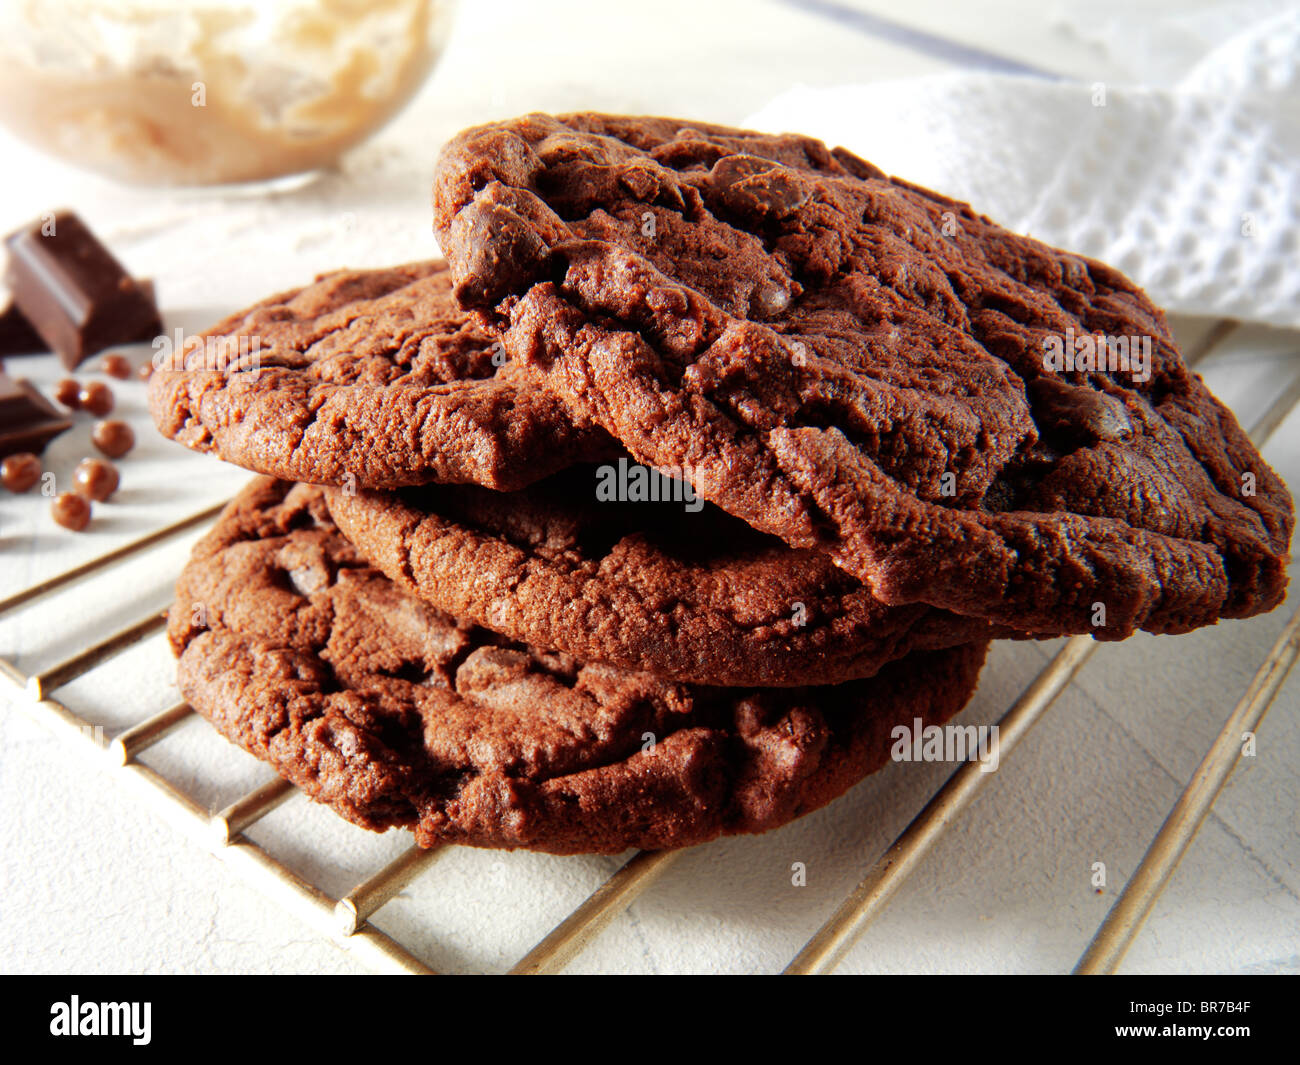 Chocolate biscuits - cookies - Stock Image